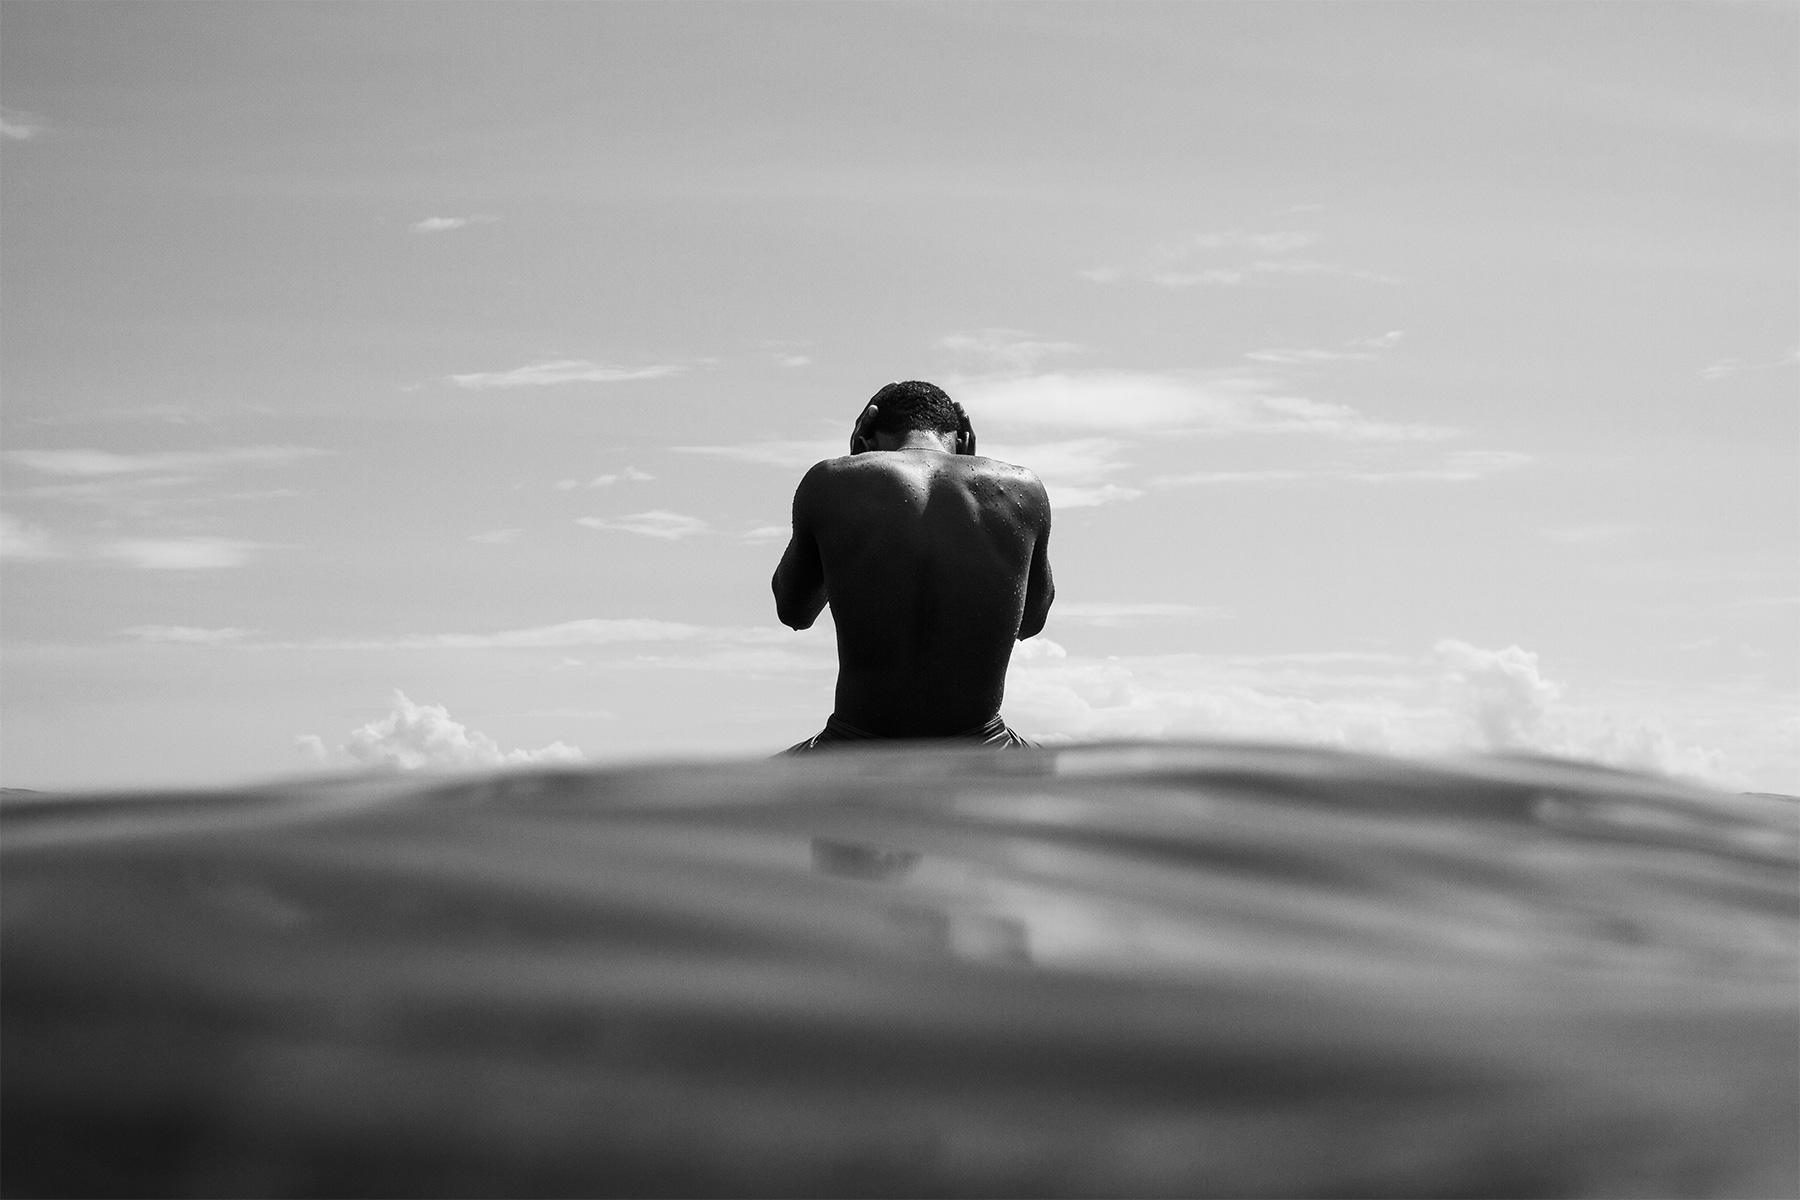 black and white photograph of a surfer sat waiting for a wave with his head in his hands, by joel sharpe